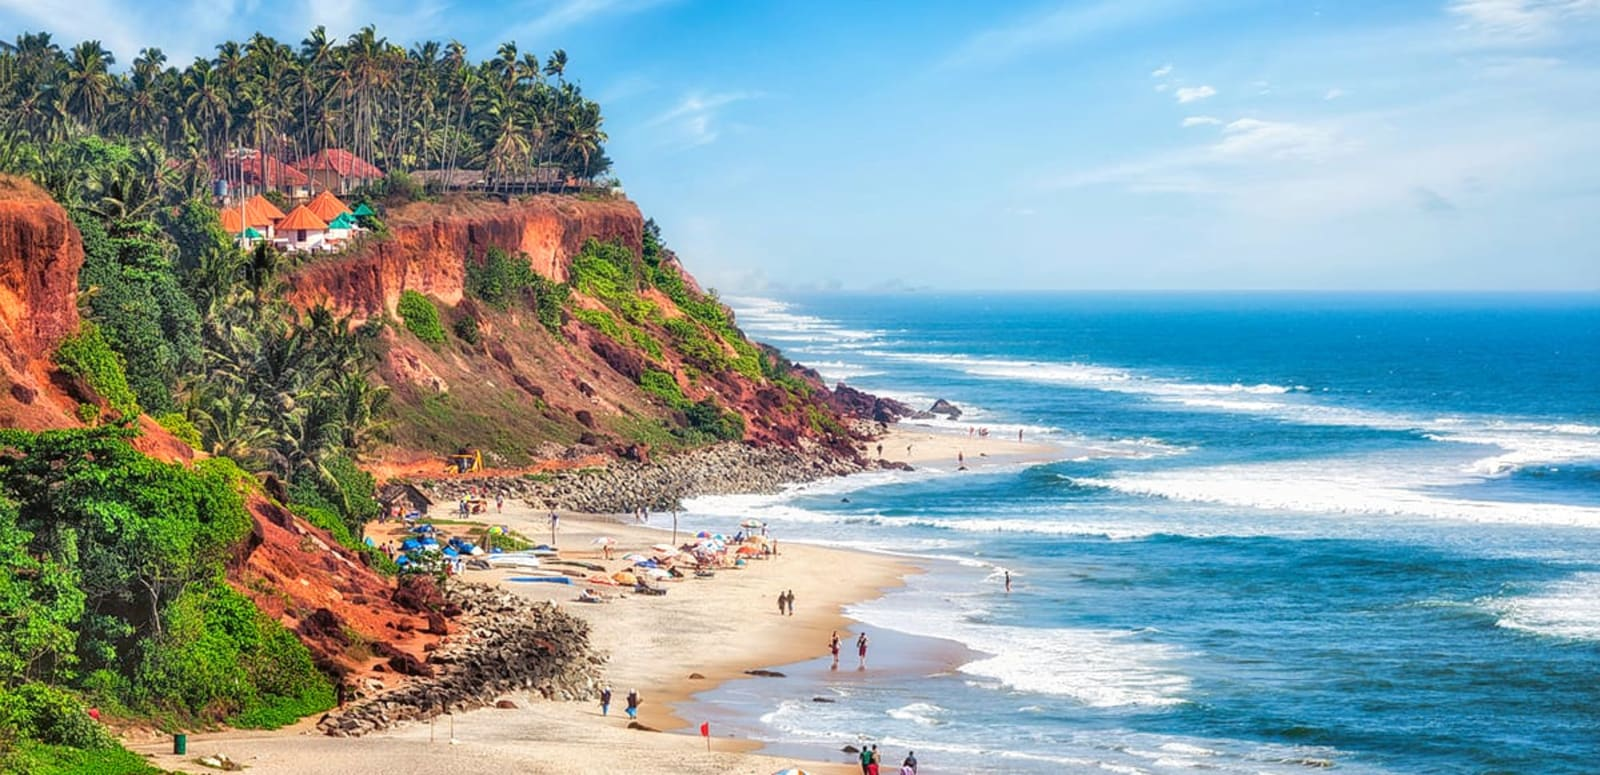 15 Best Things to Do in Varkala - 2019 (Photos & Reviews)